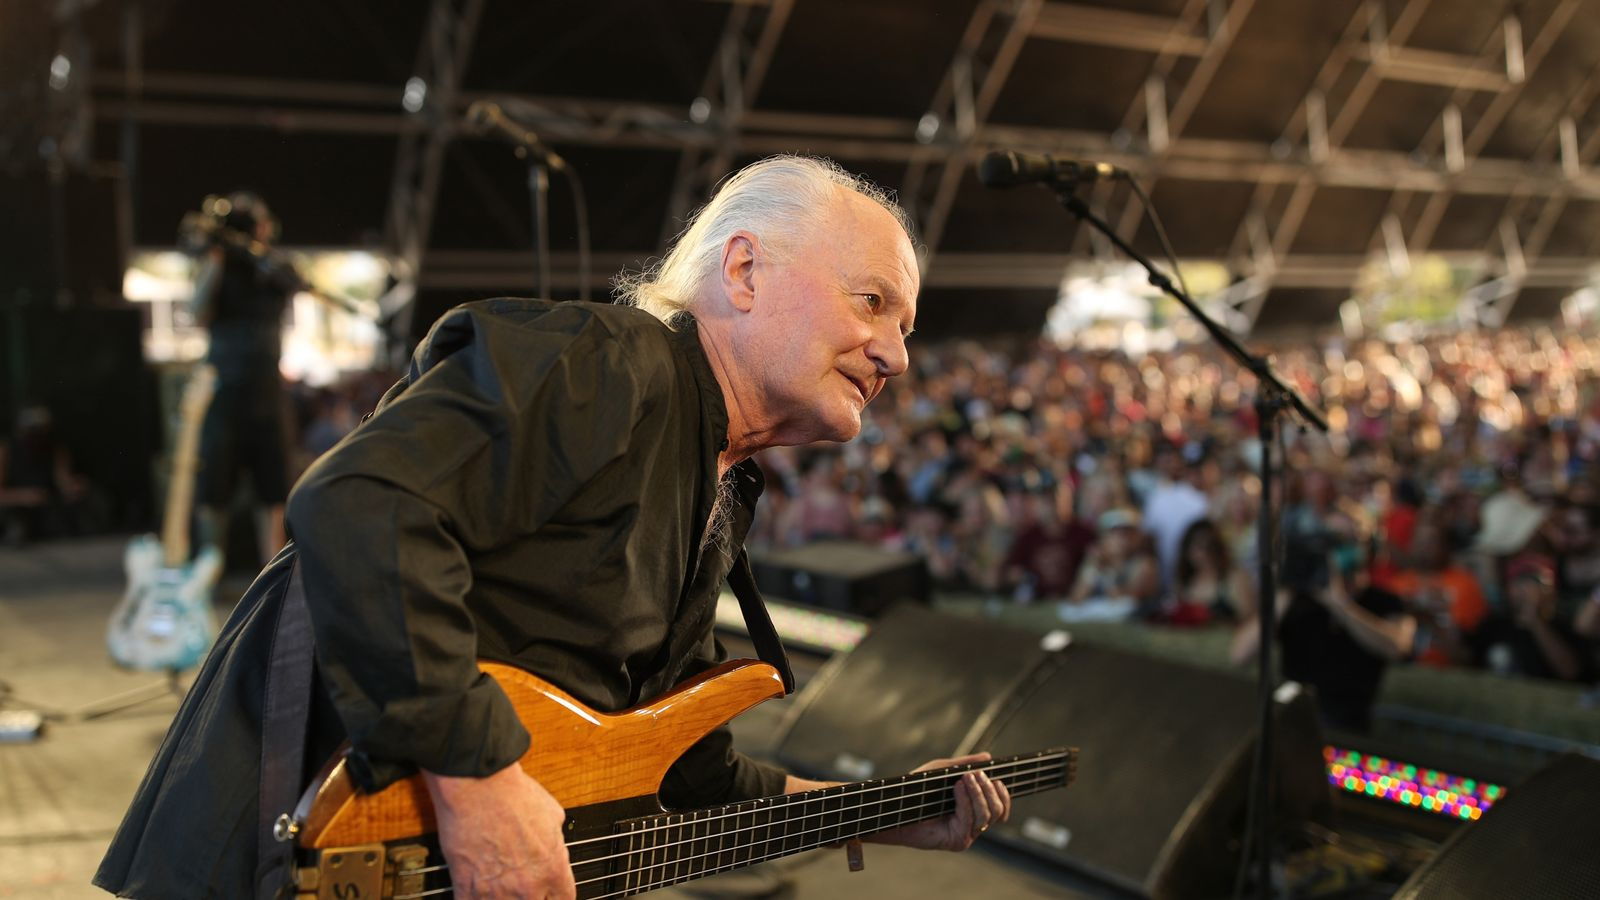 Zombies and Kinks bassist Jim Rodford dies